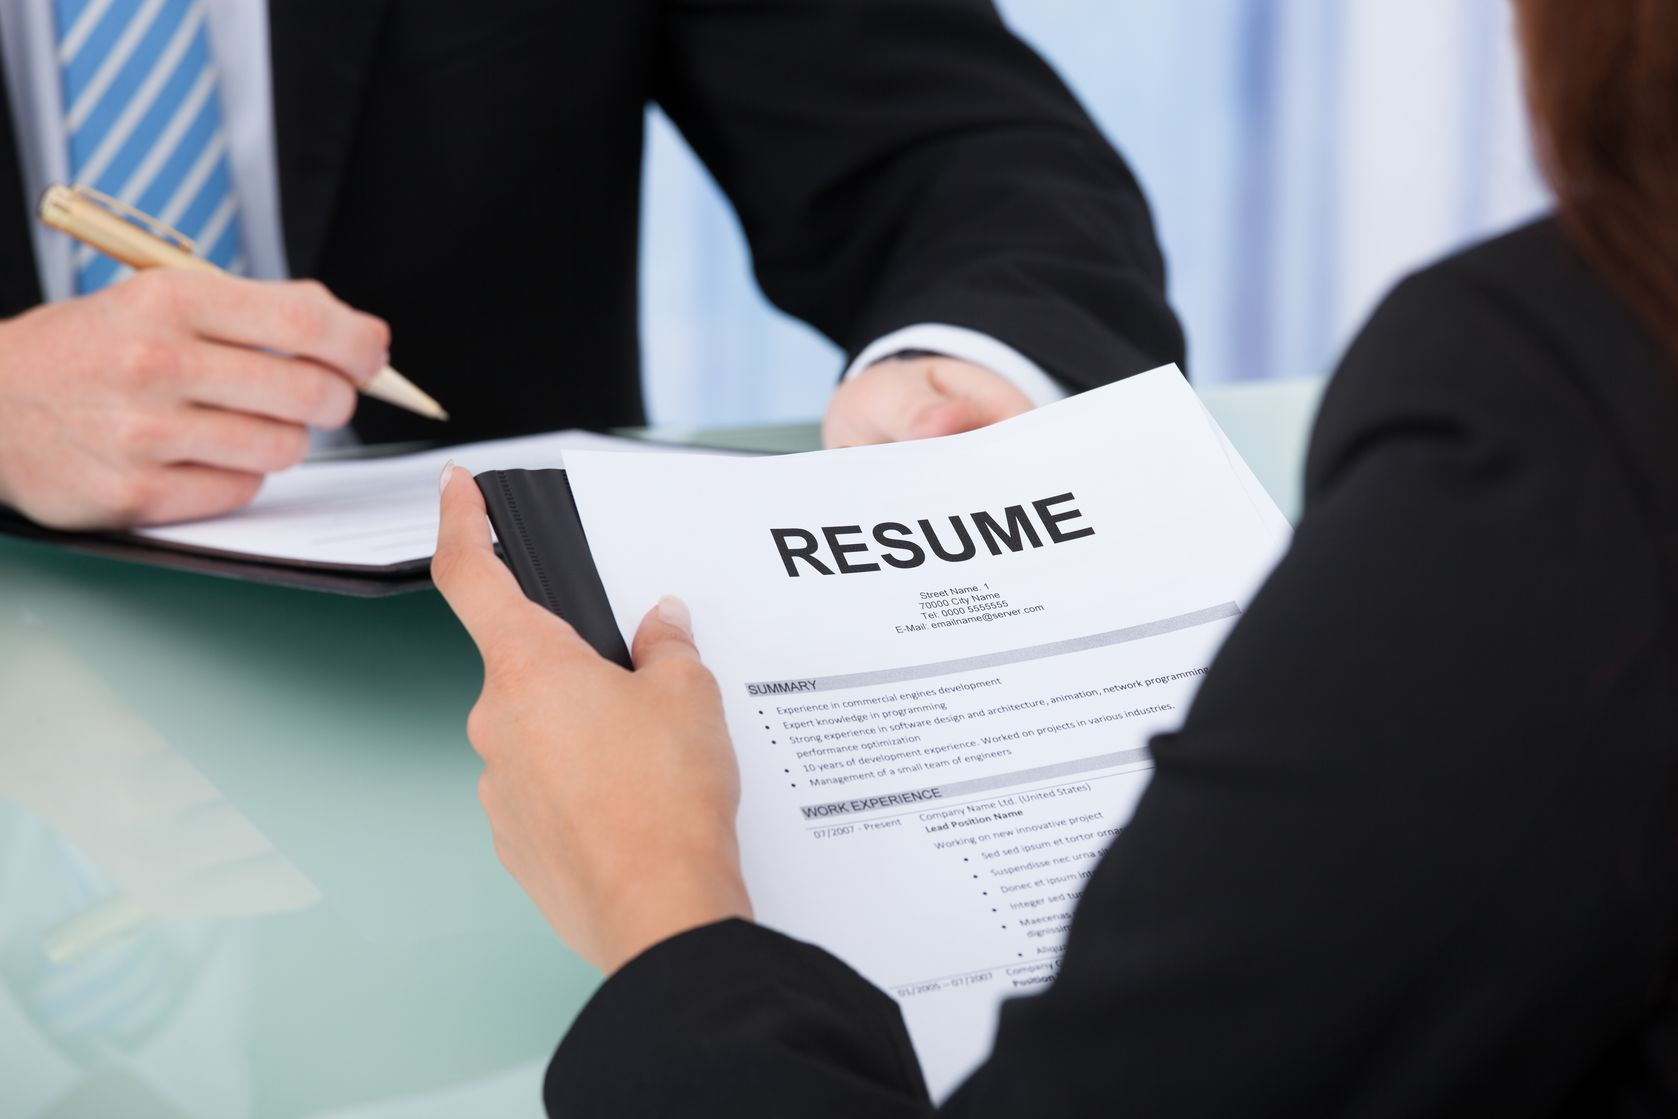 cvs resumes to secure law interview resume and services basic computer skills sample Resume Resume And Interview Services